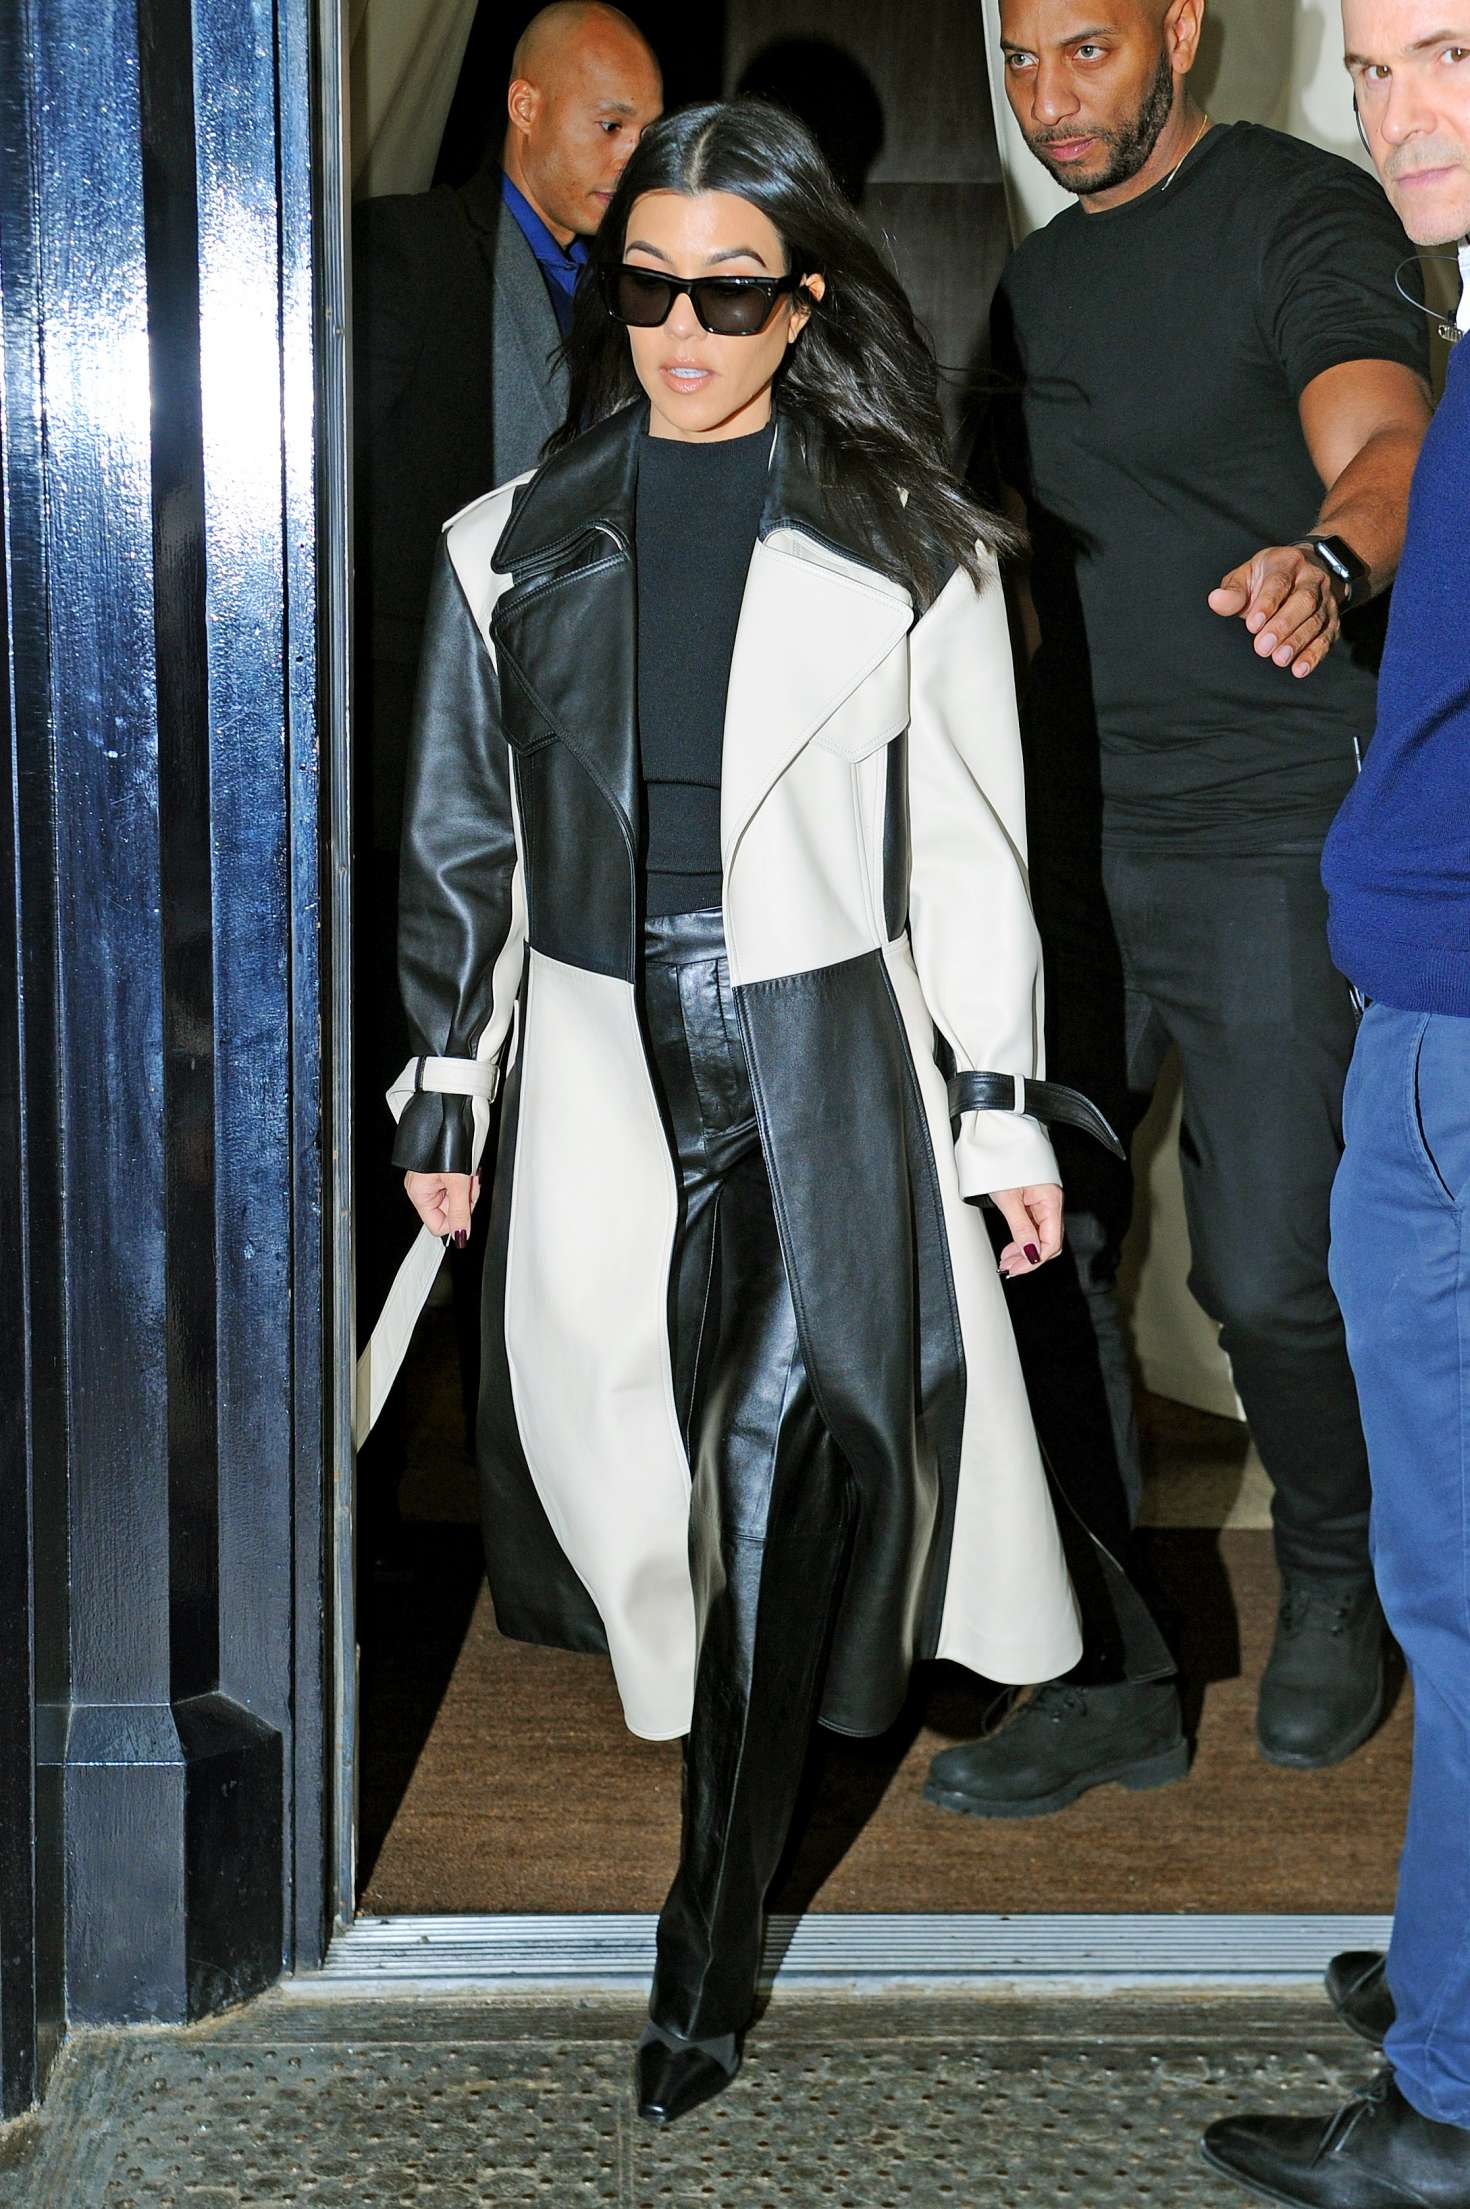 Kourtney Kardashian in Black and White Outfit - Out in New York